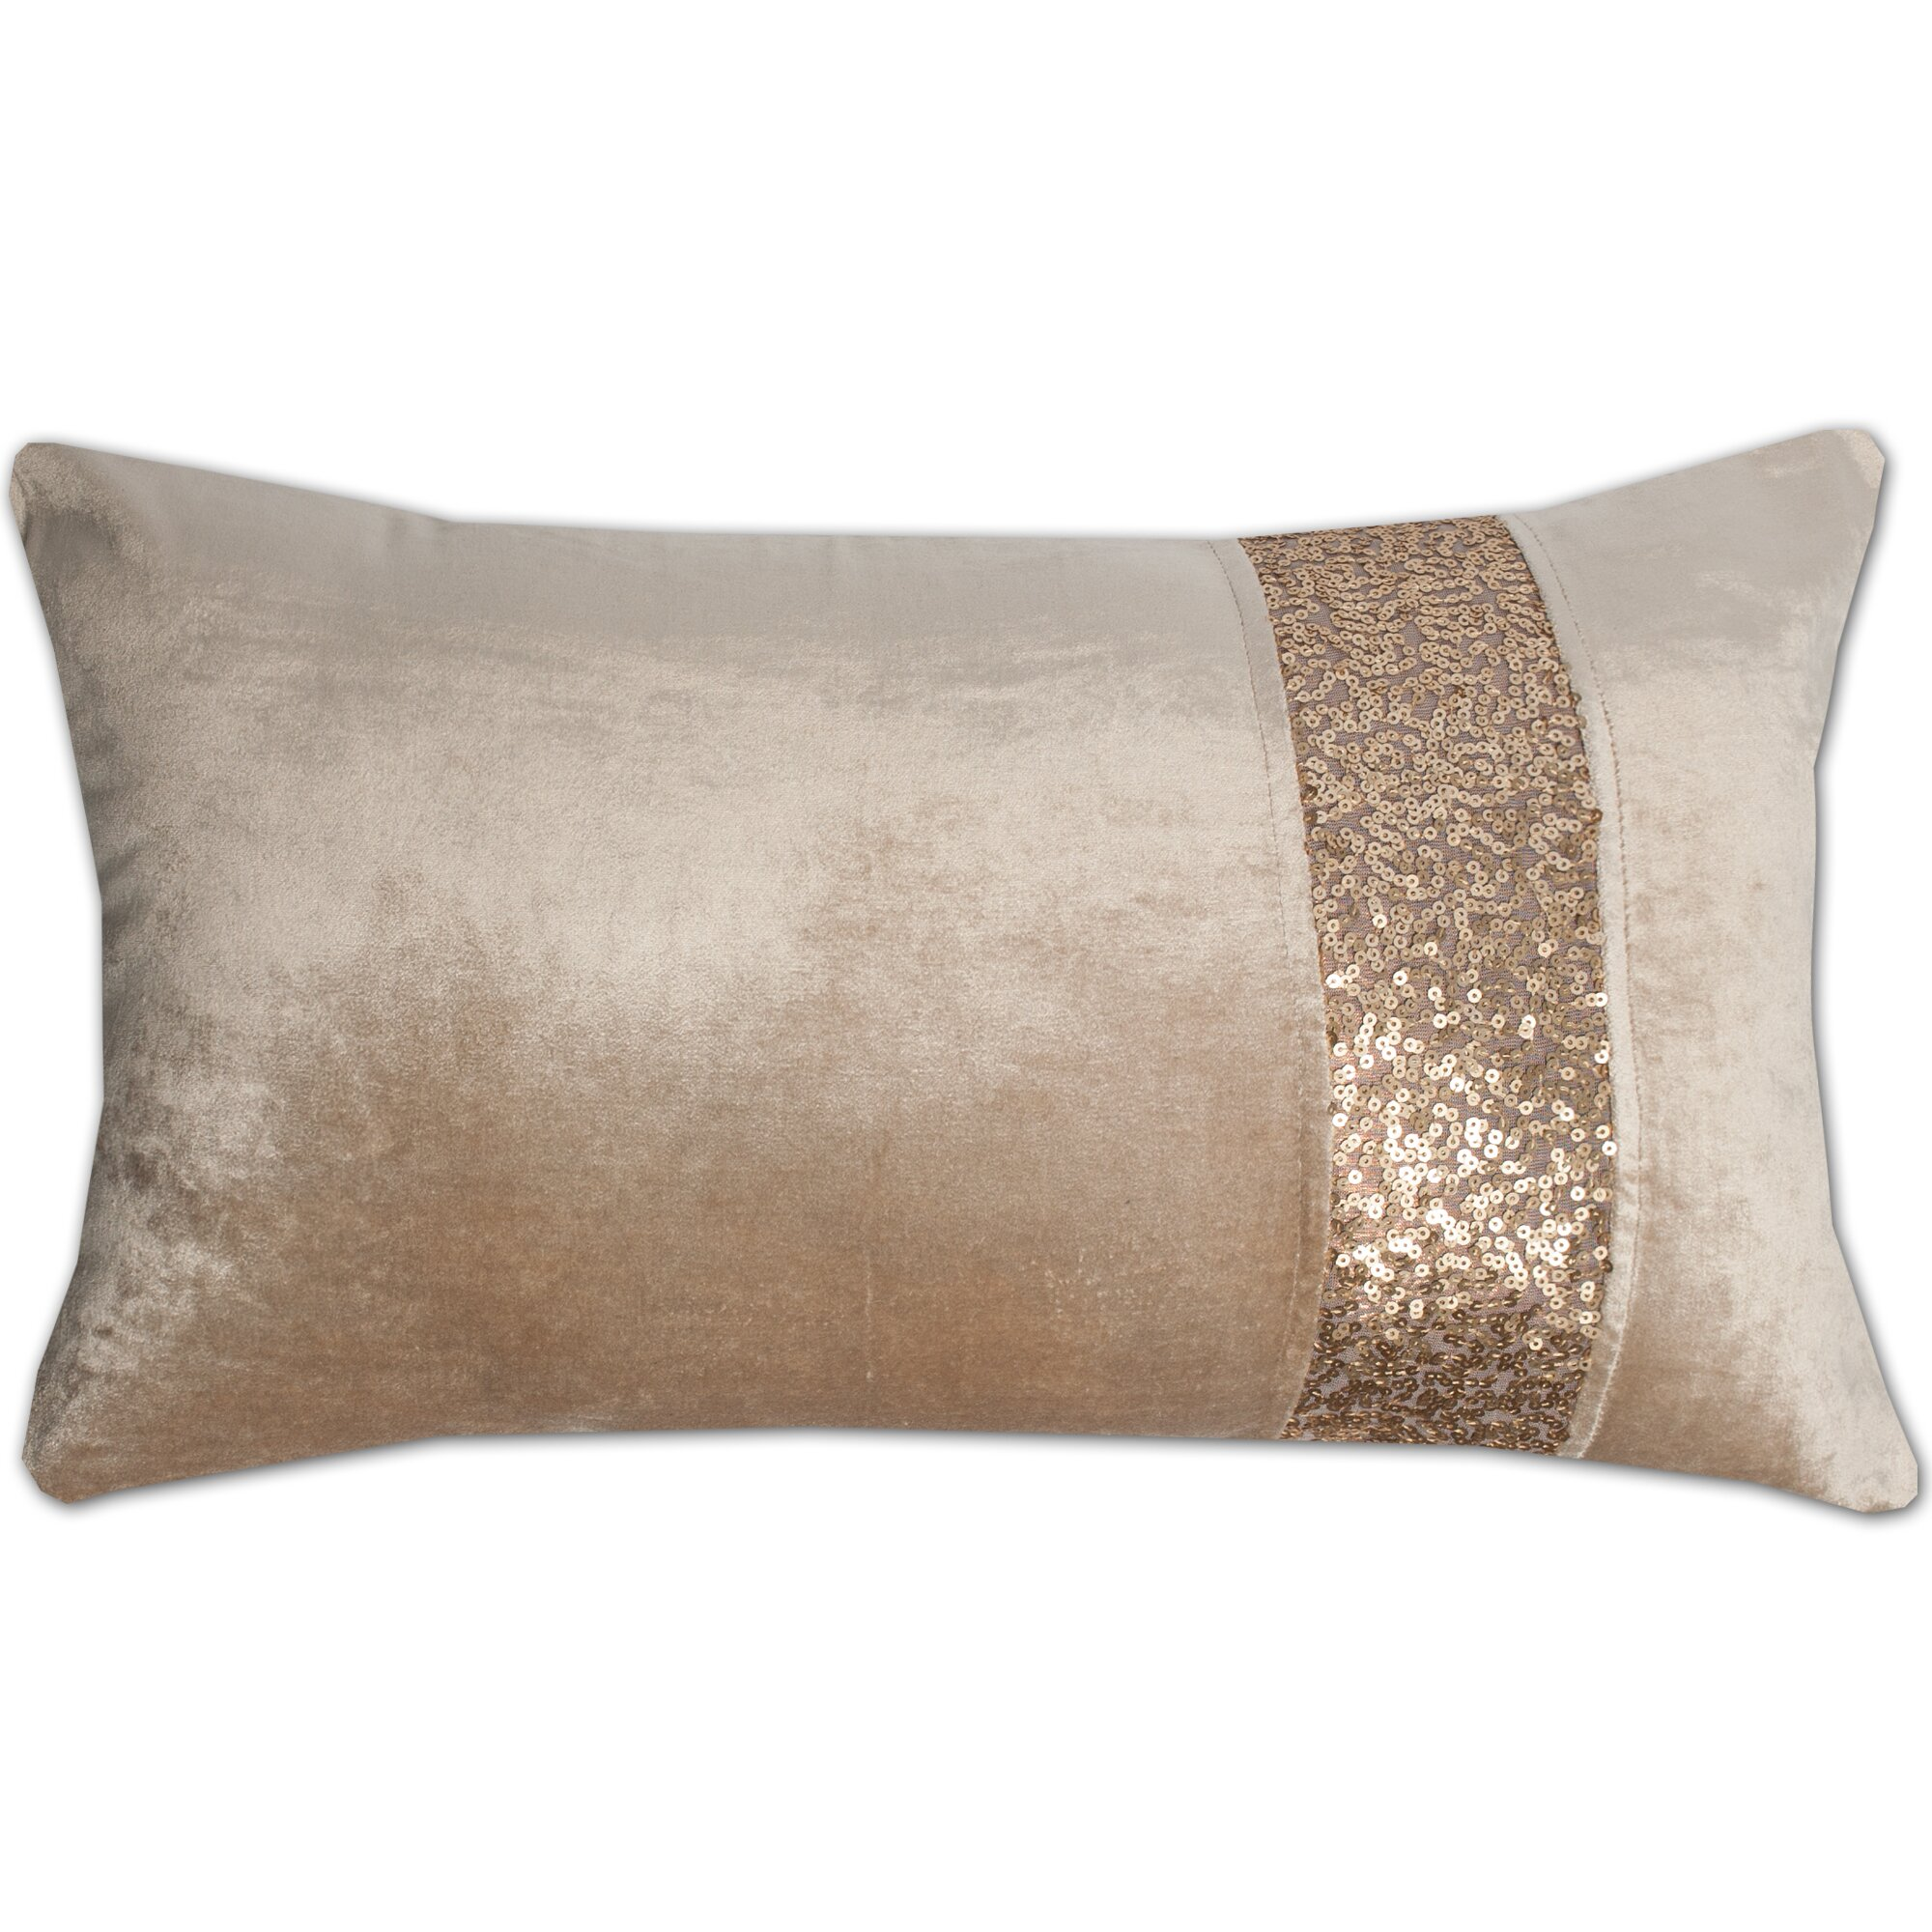 Gracious Home Decorative Pillows : Sweet Home Collection Luxury Zippered Sequin Stripe Decorative Throw Pillow & Reviews Wayfair